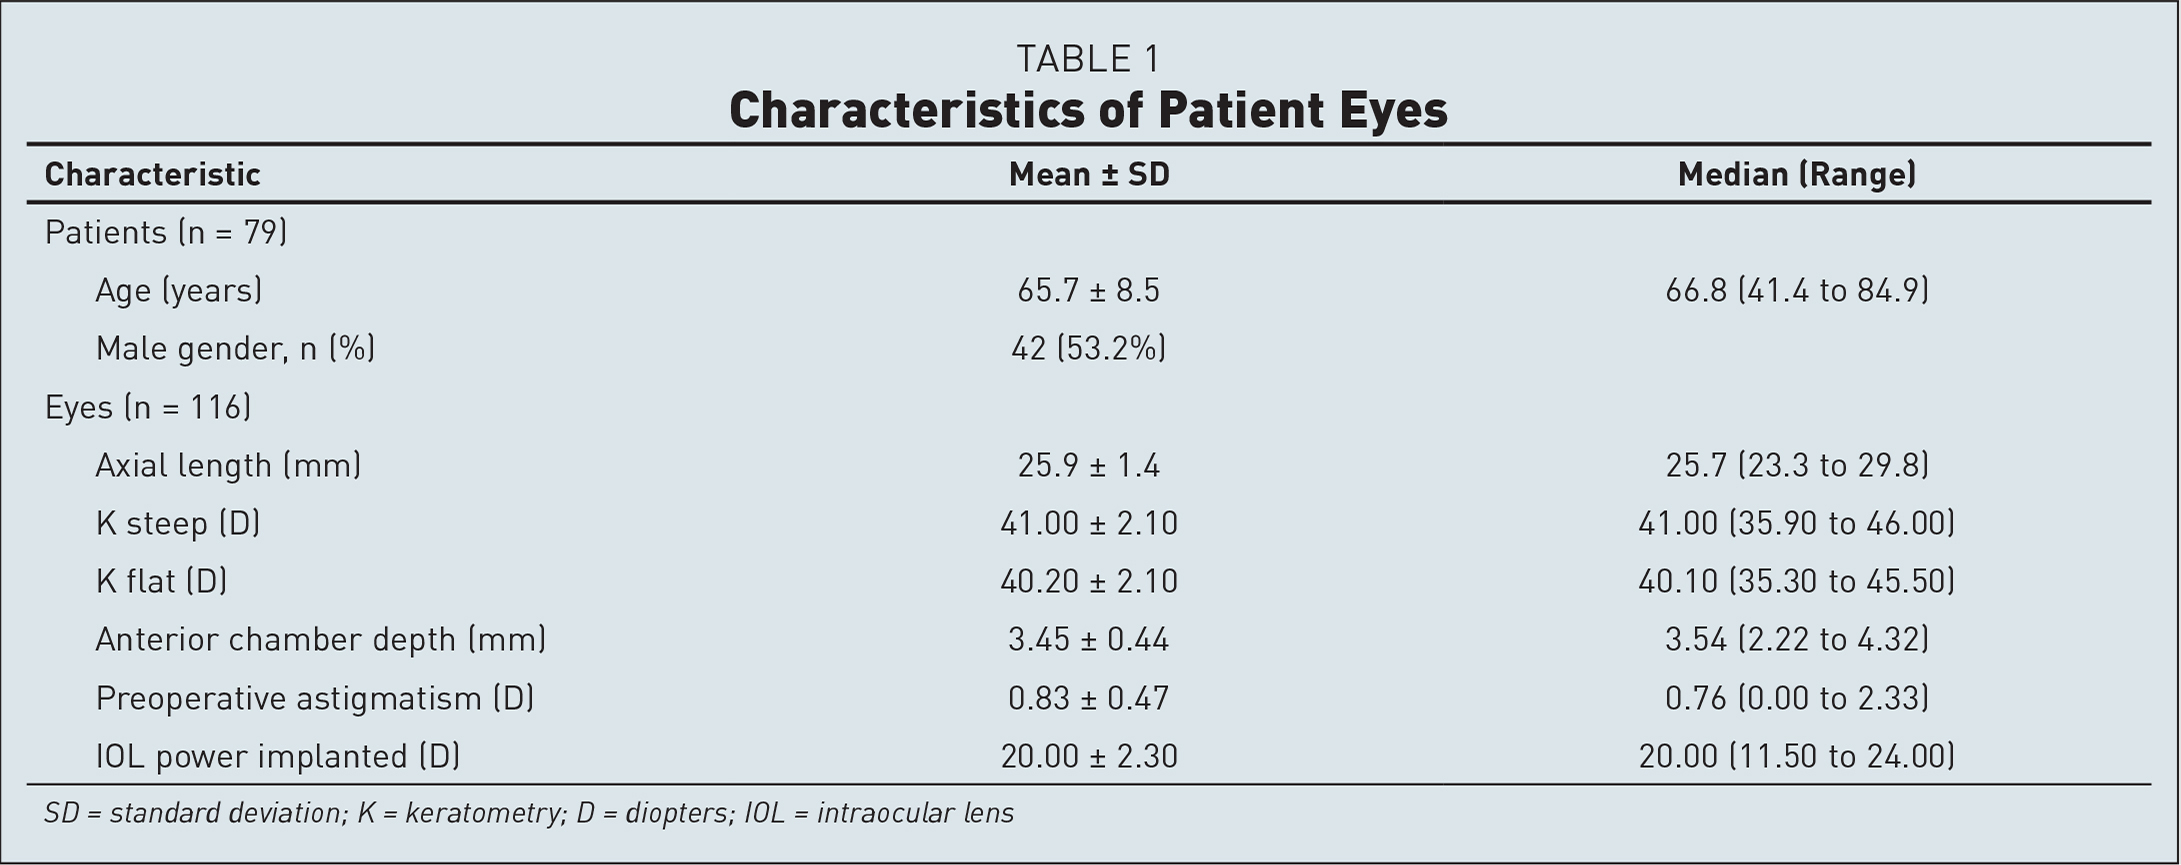 Characteristics of Patient Eyes